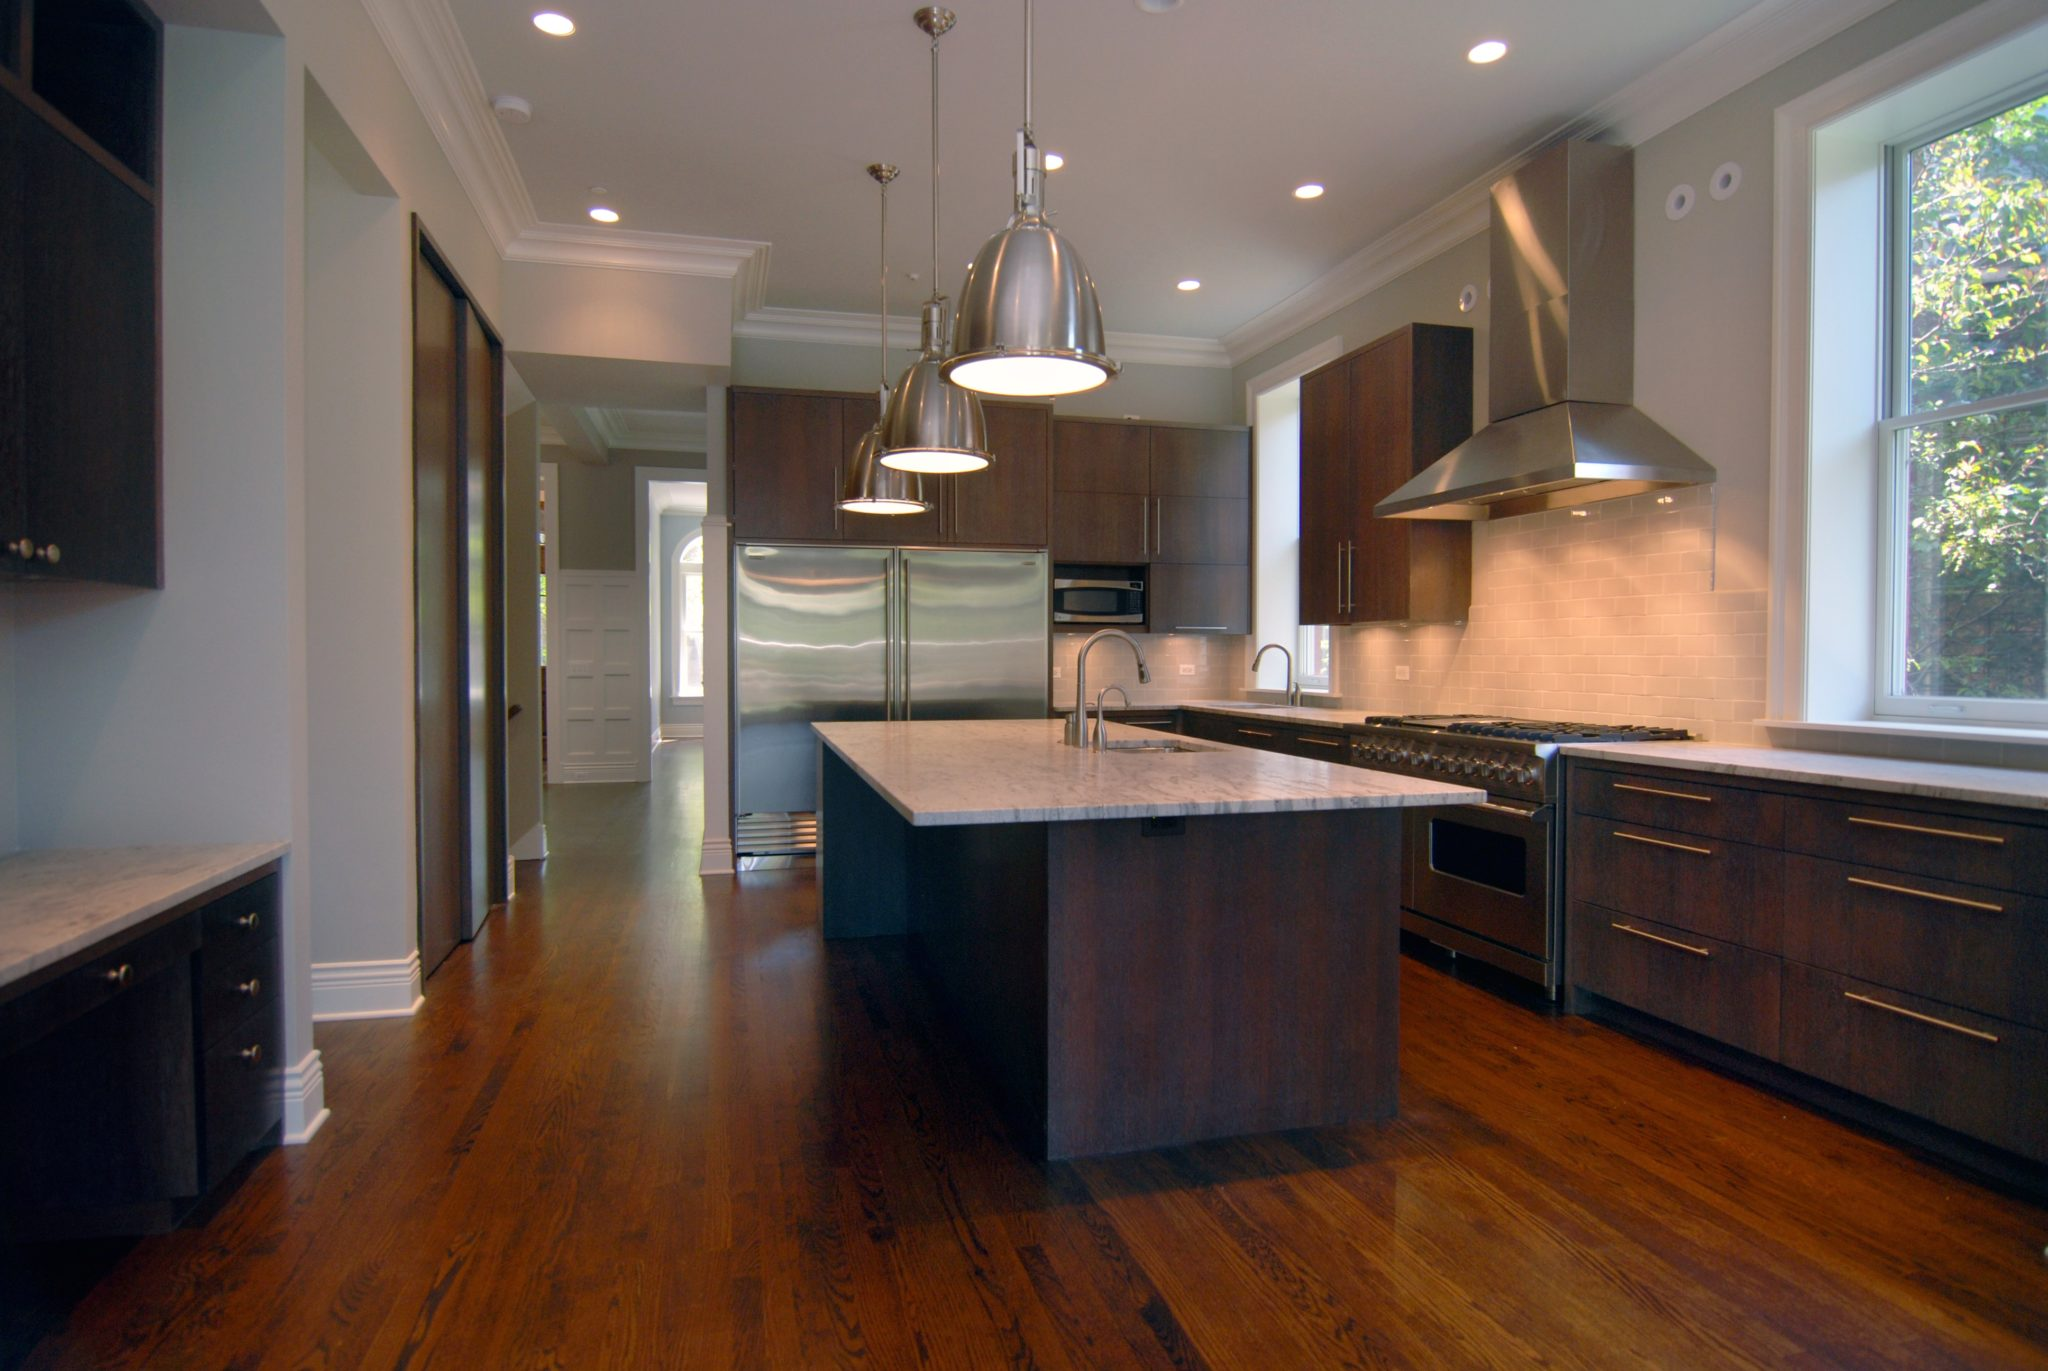 Custom kitchen in a complete home renovation by Wiley Designs, LLC